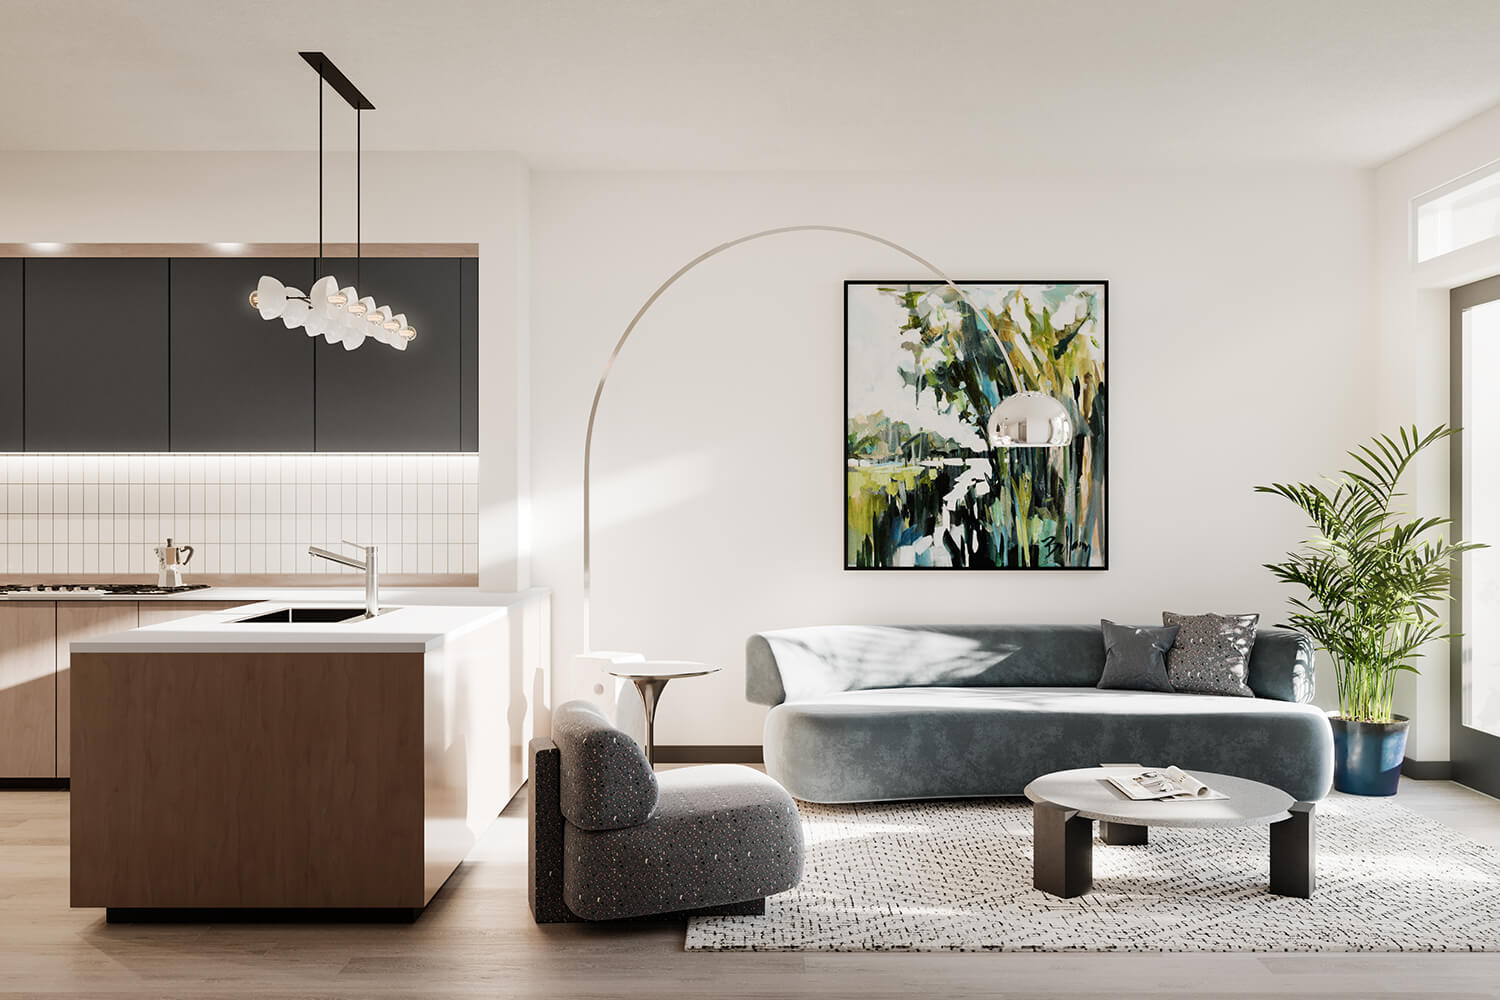 The Sommery Kitchen & Living Room Rendering